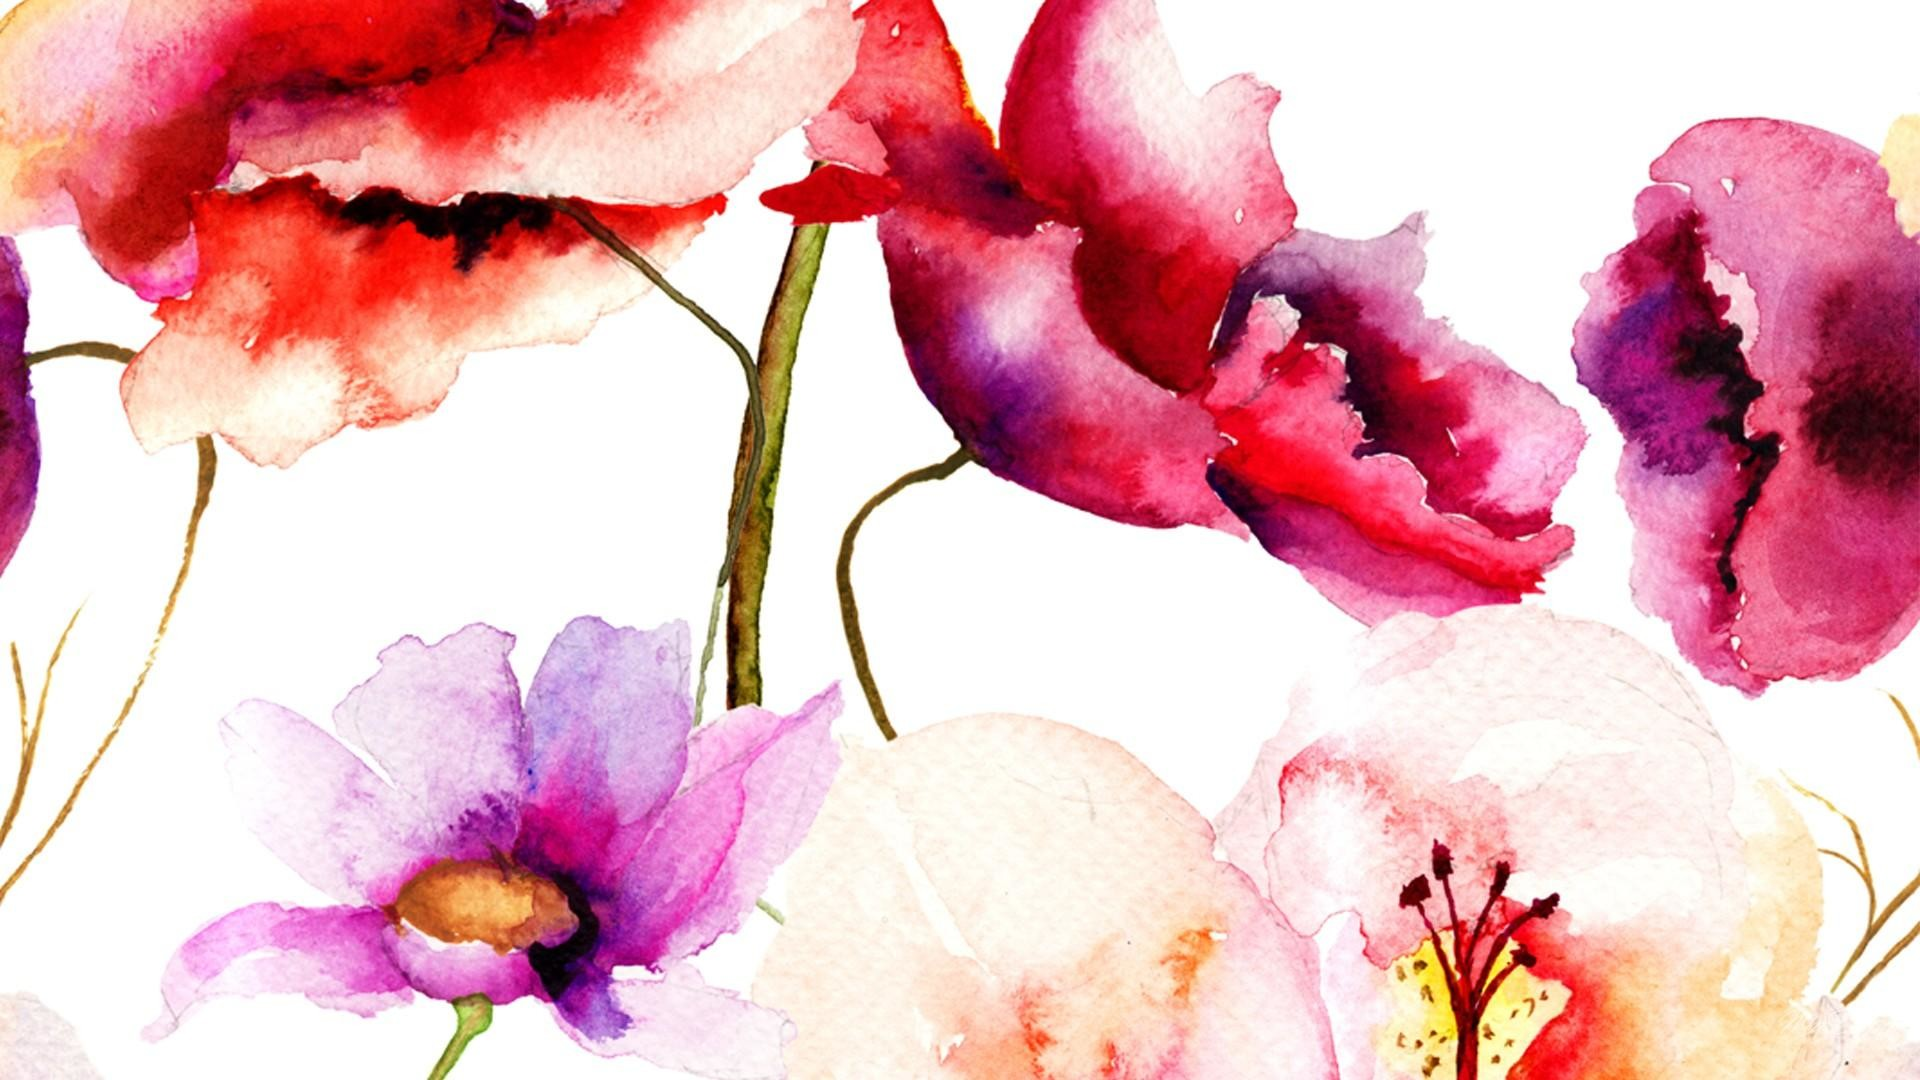 Watercolor iphone wallpaper 72 images - High resolution watercolor flowers ...